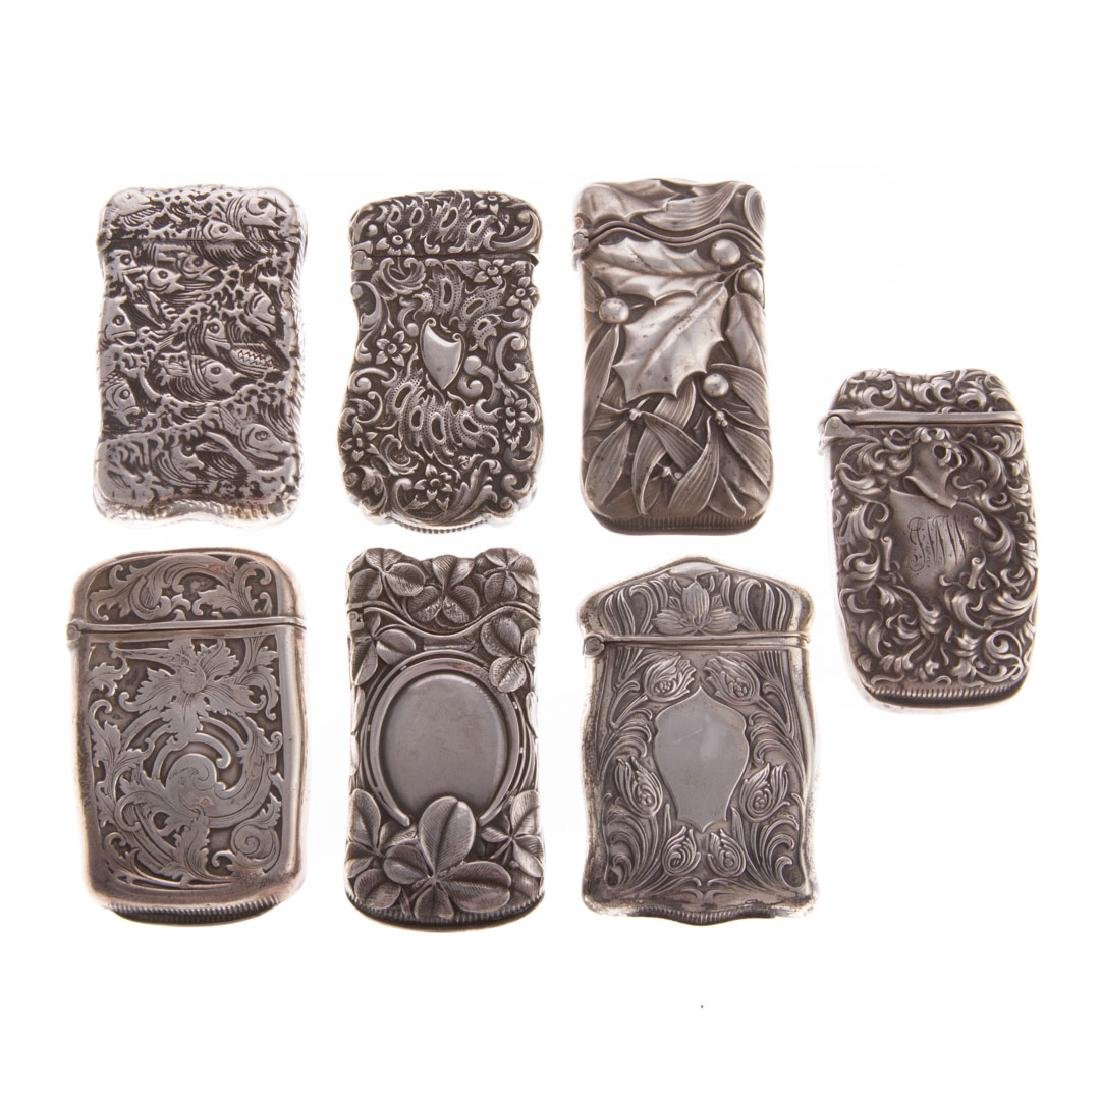 7 Art Nouveau sterling silver match safes